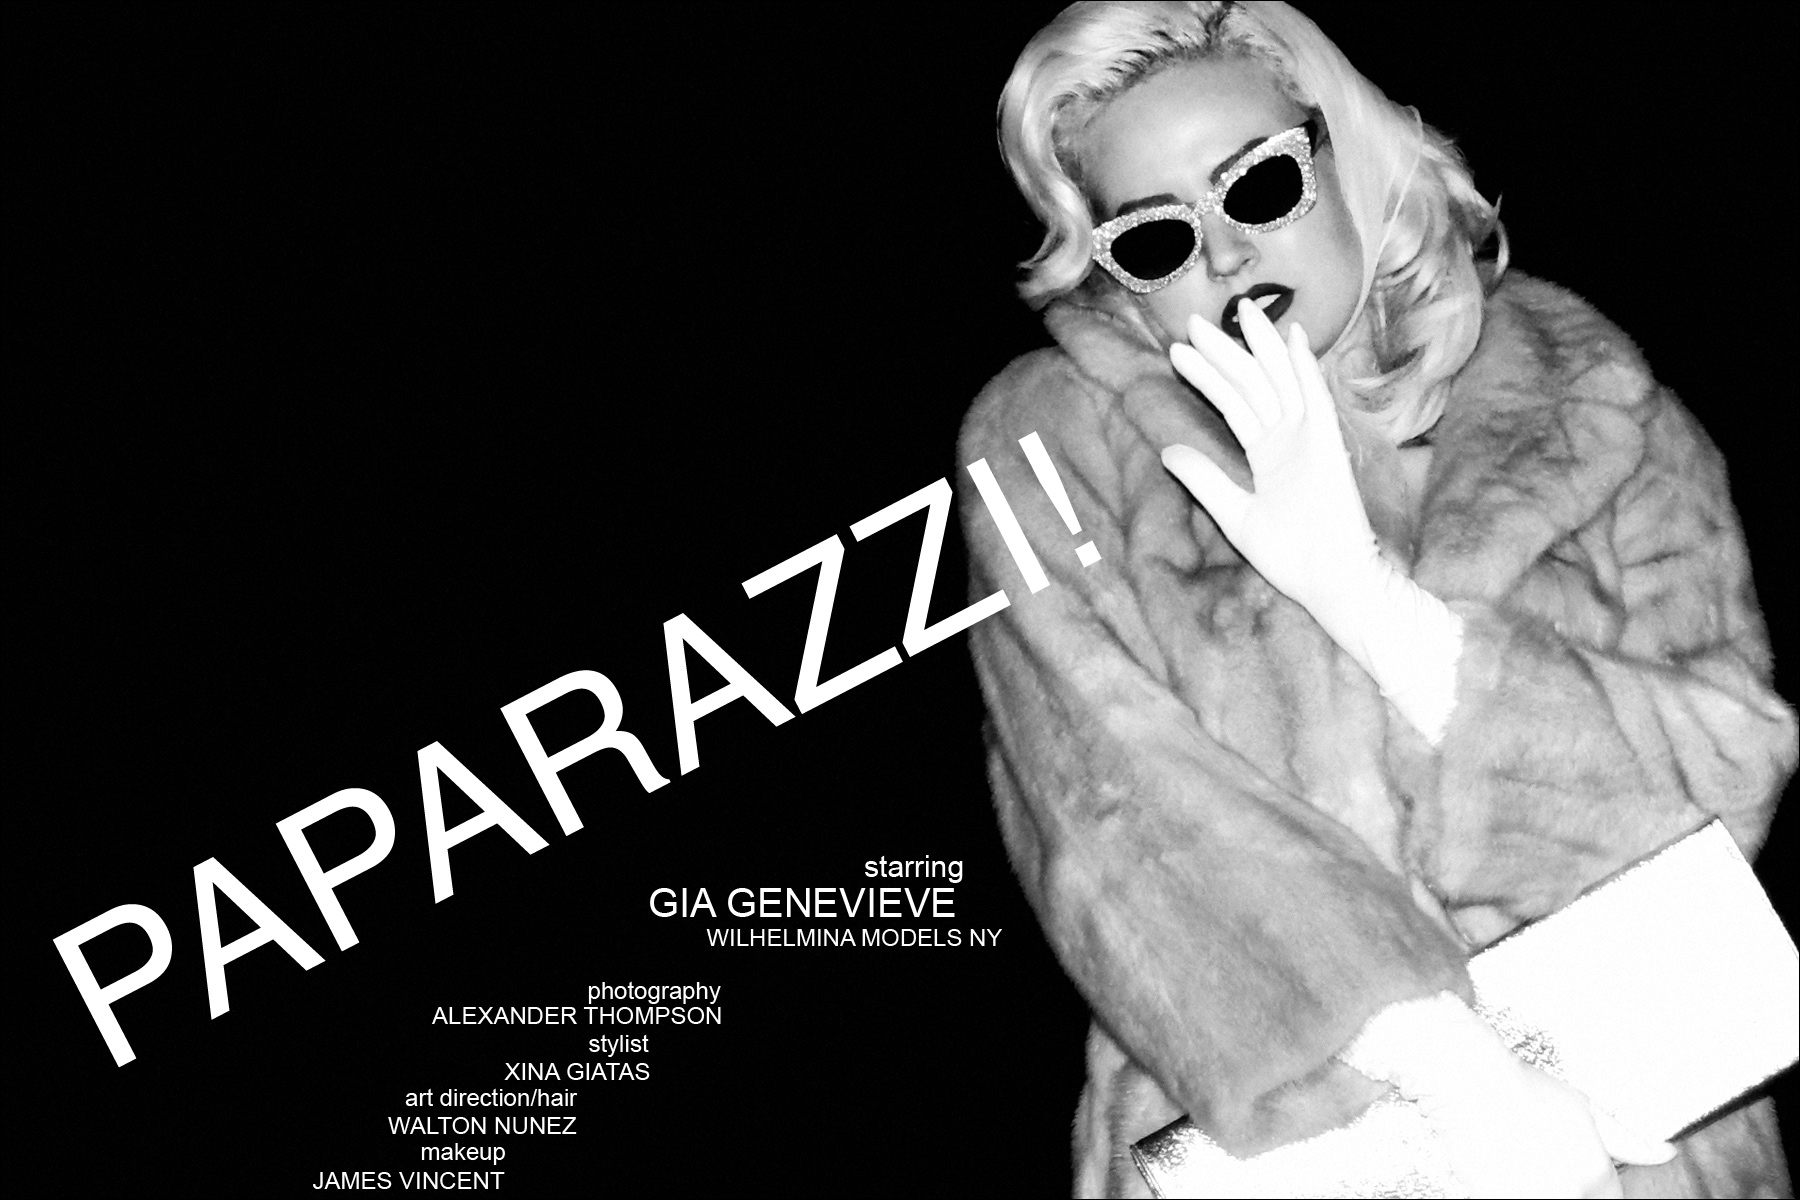 Paparazzi! Ponyboy Magazine women's editorial, starring Miss Gia Genevieve from the Wilhelmina Agency New York. Photographed by Alexander Thomspon.